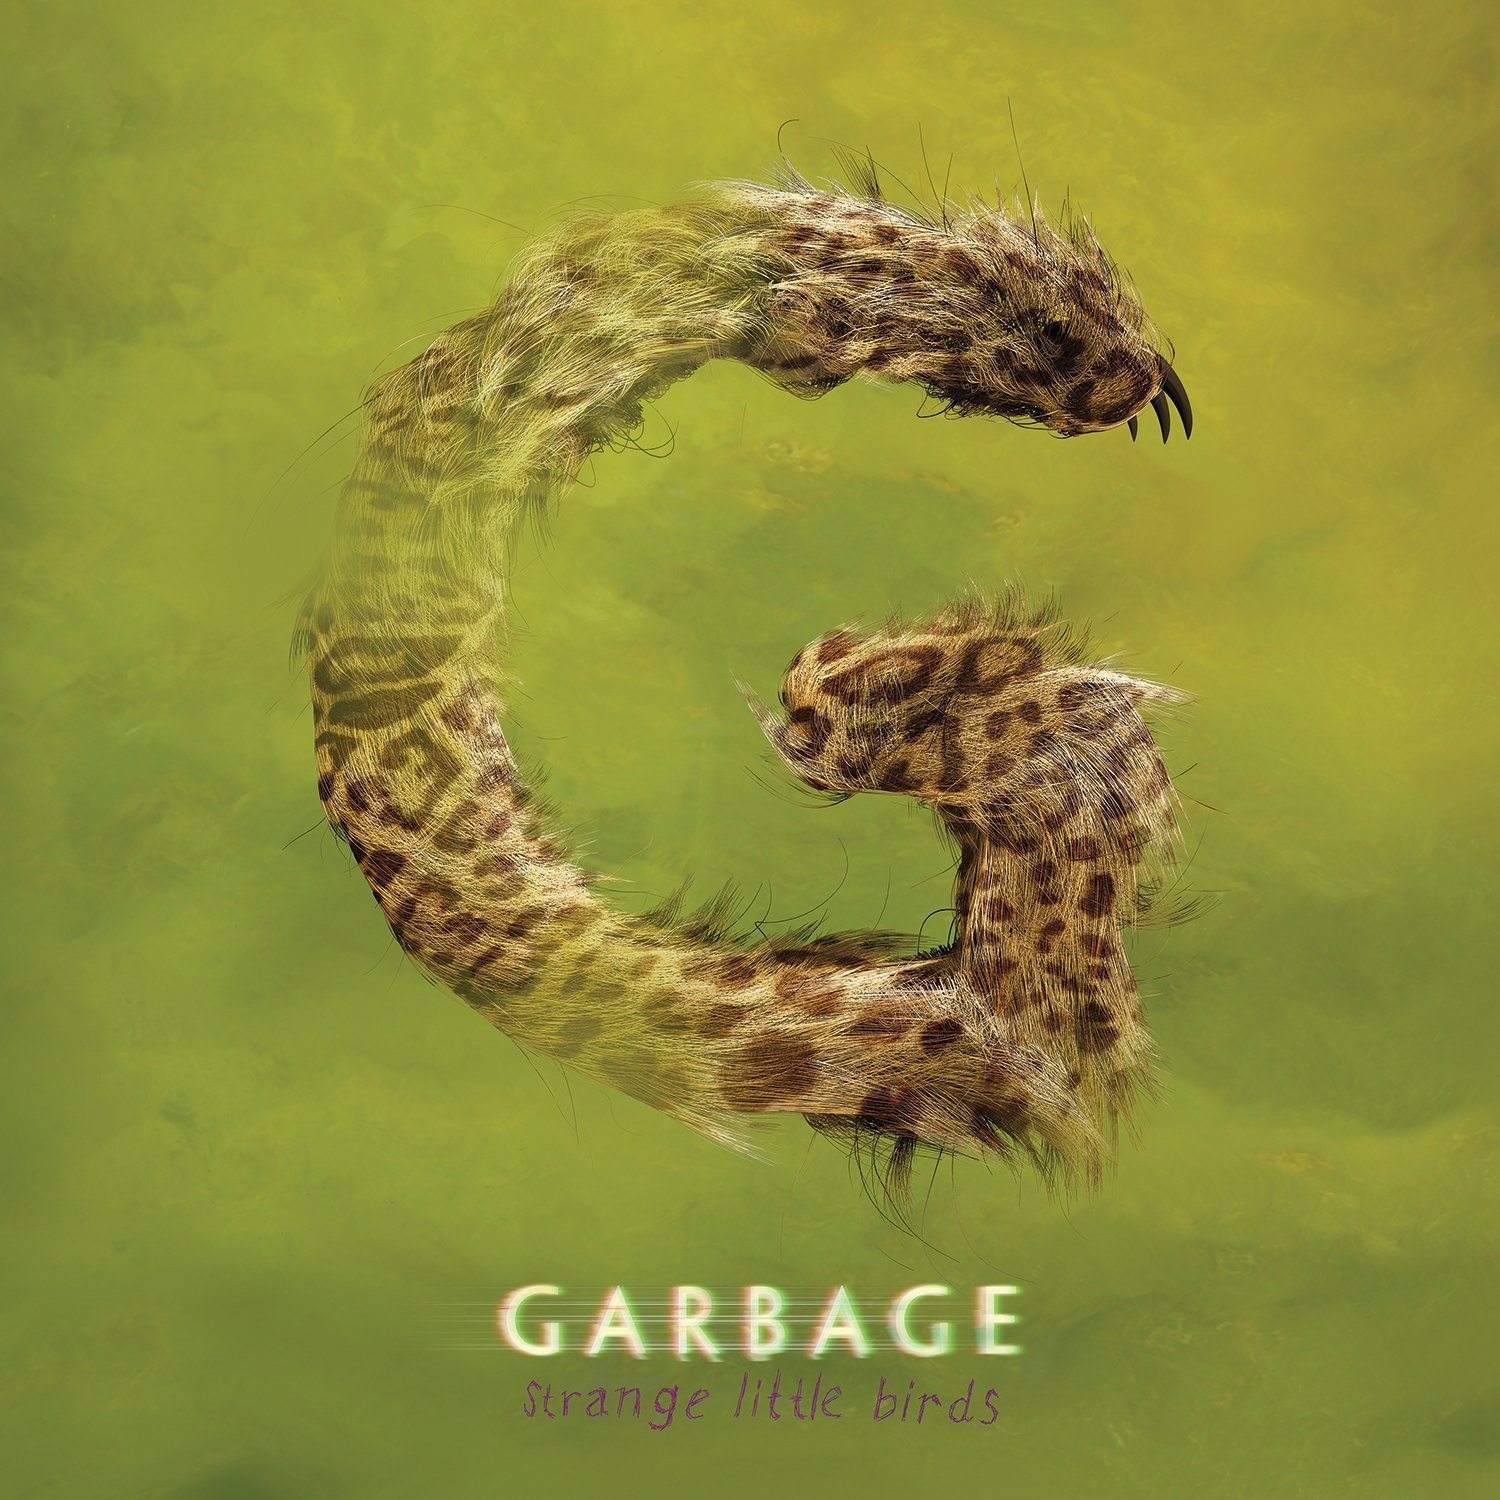 Garbage, Strange Little Birds